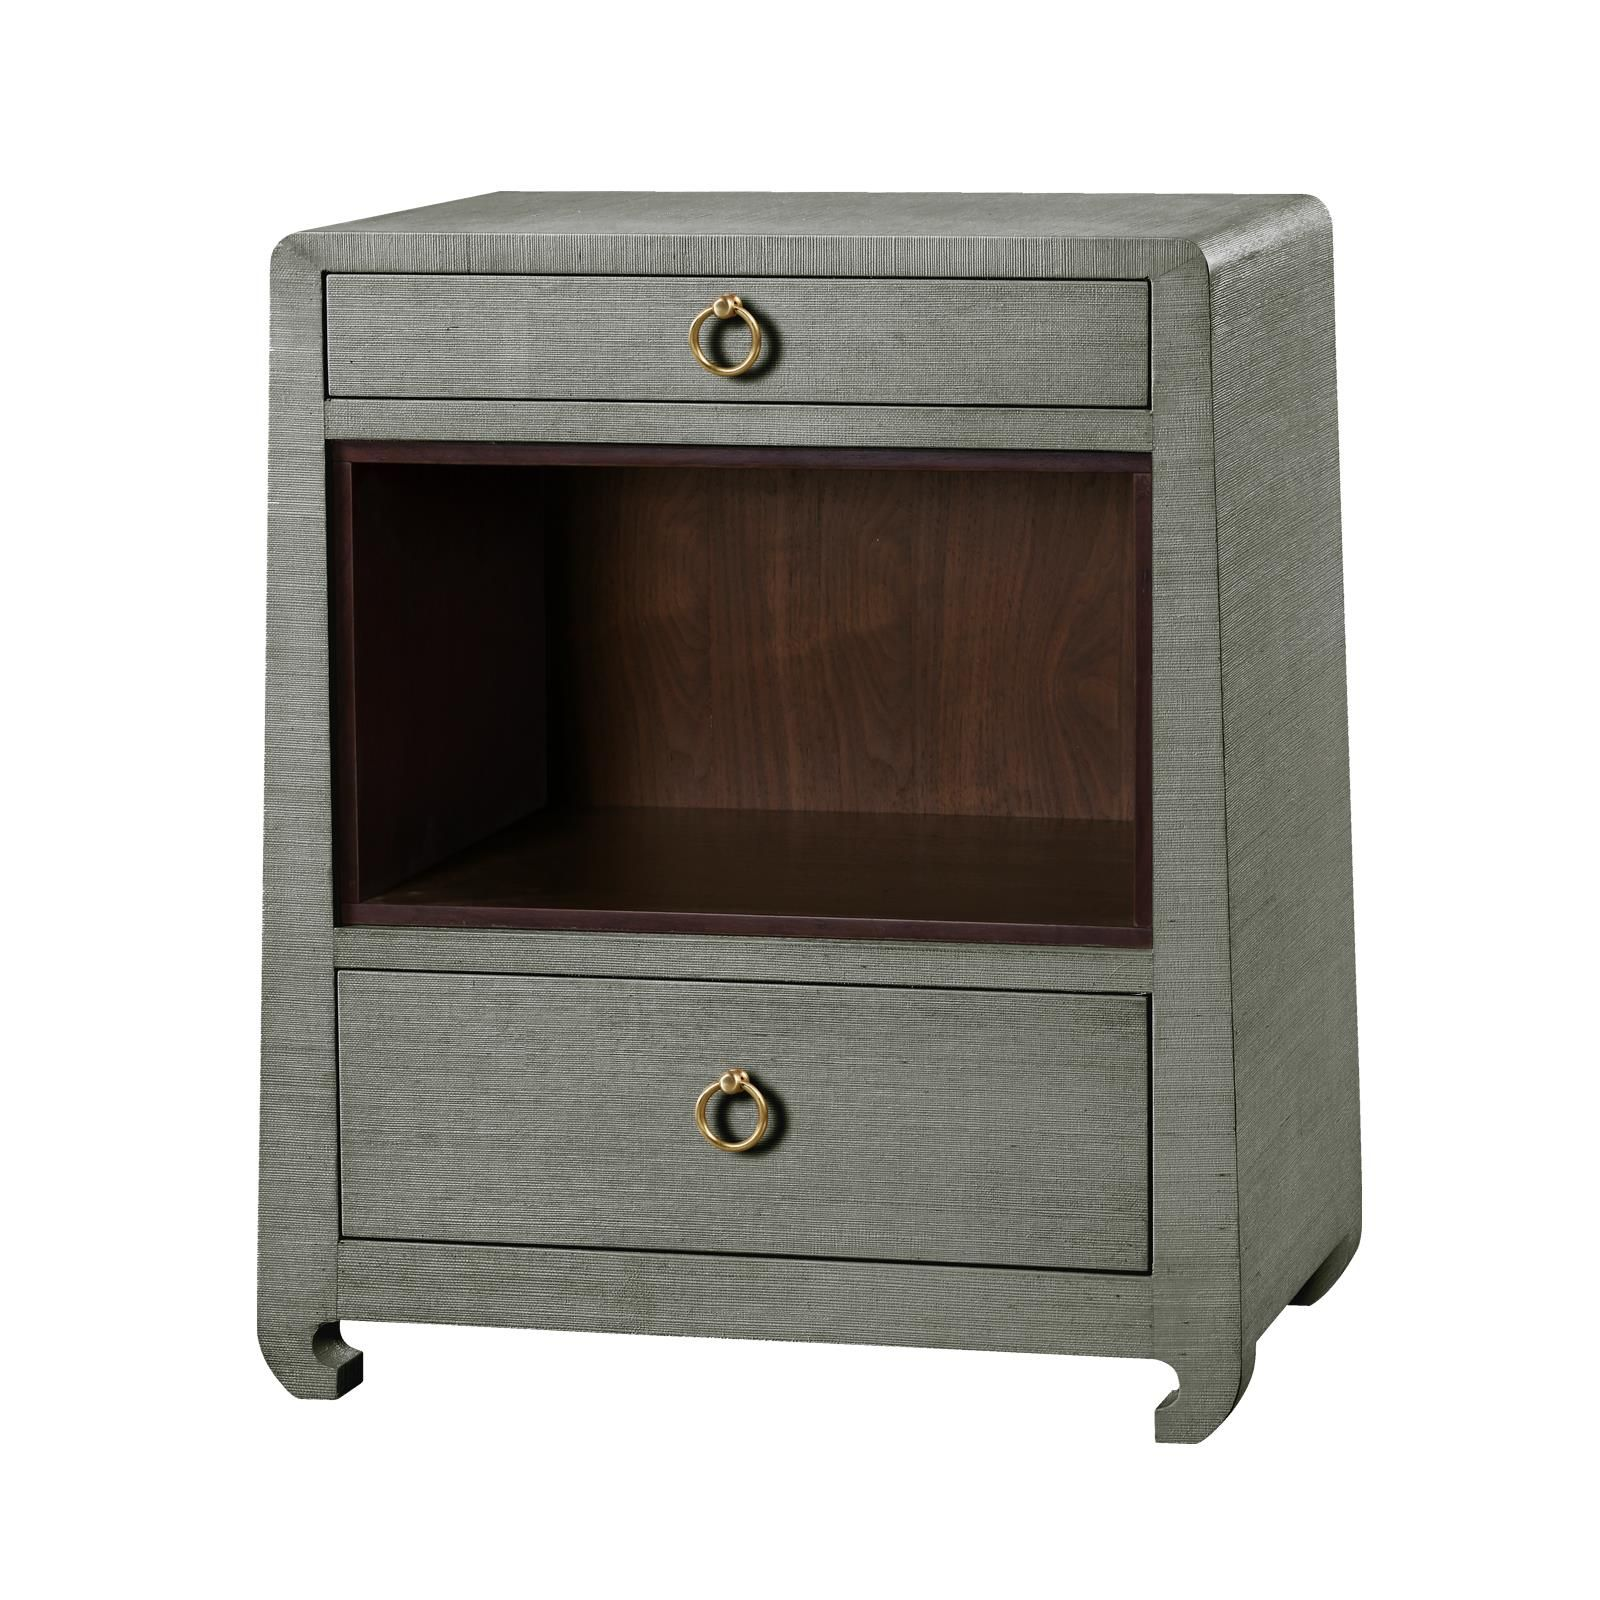 ming drawer side table sage green bungalow tables accent kmart desk lamp wicker set counter height trestle dining cement furniture west elm armchair narrow entryway cabinet